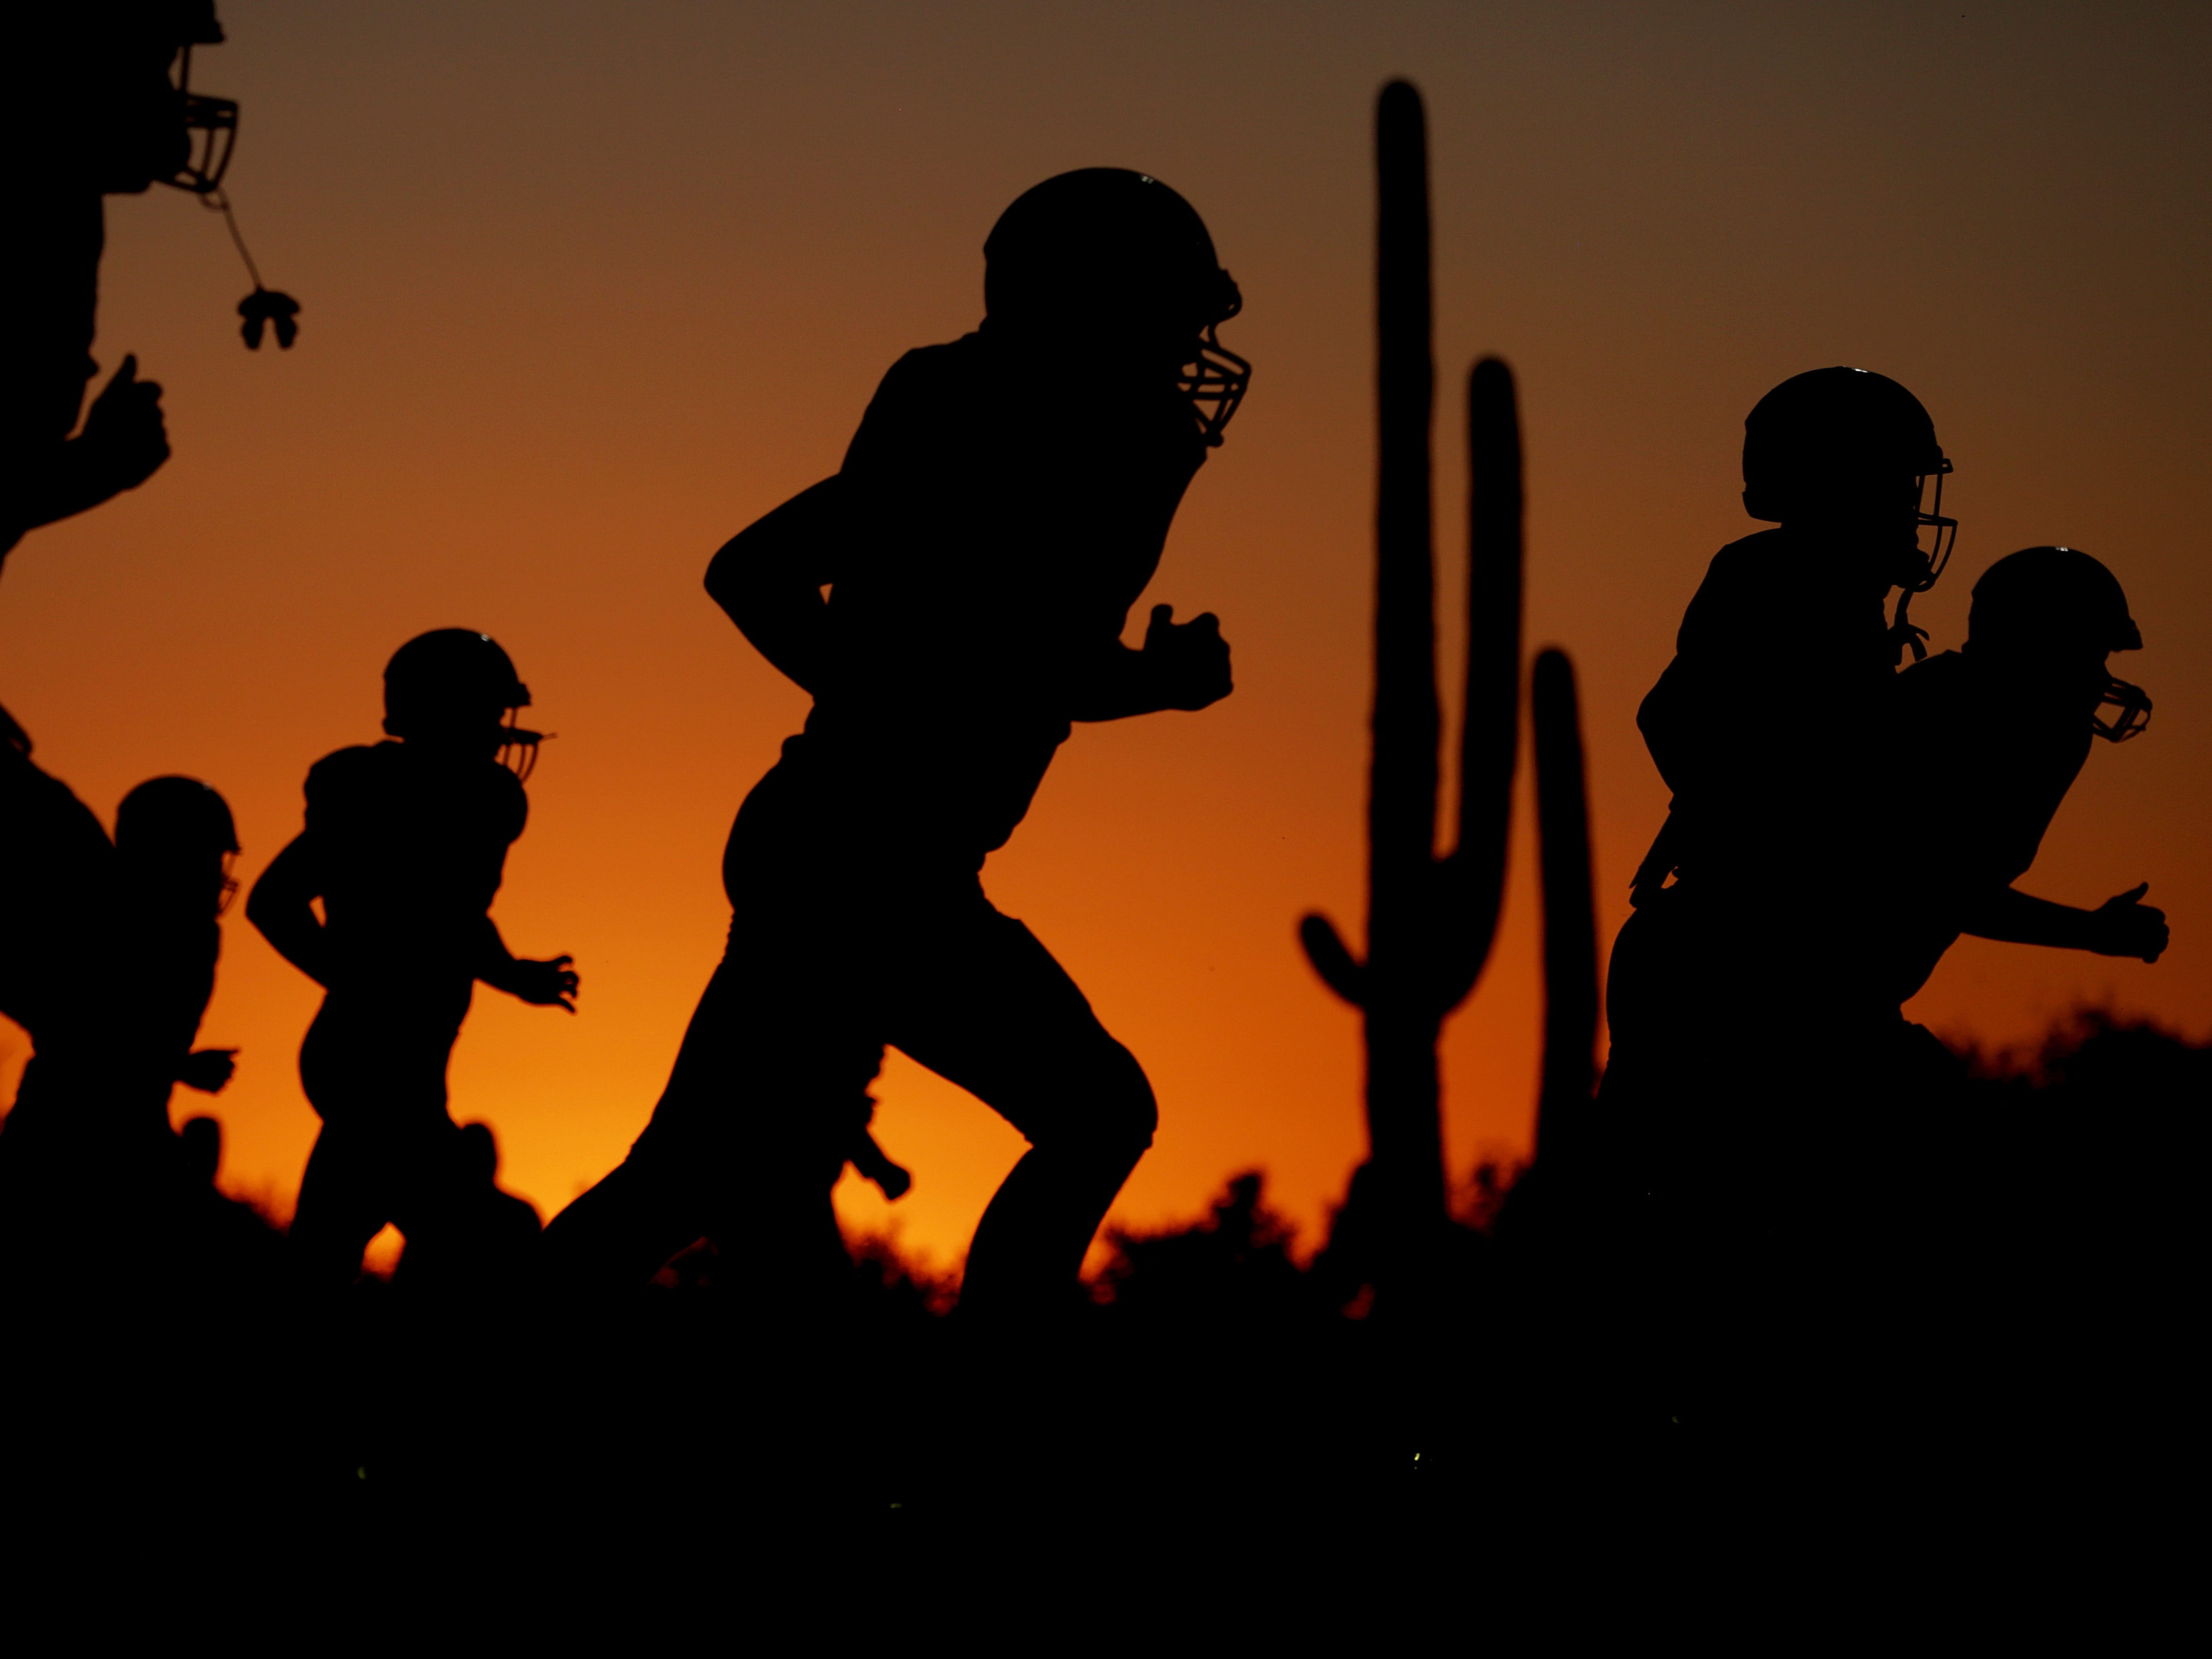 Peoria Centennial players warm up as the sun sets to the west before the Ironwood Ridge vs. Peoria Centennial high school football game at Ironwood Ridge High School, 2475 W. Naranja Drive, on Sept. 14, 2018, in Oro Valley, Ariz. Centennial won 55-7.